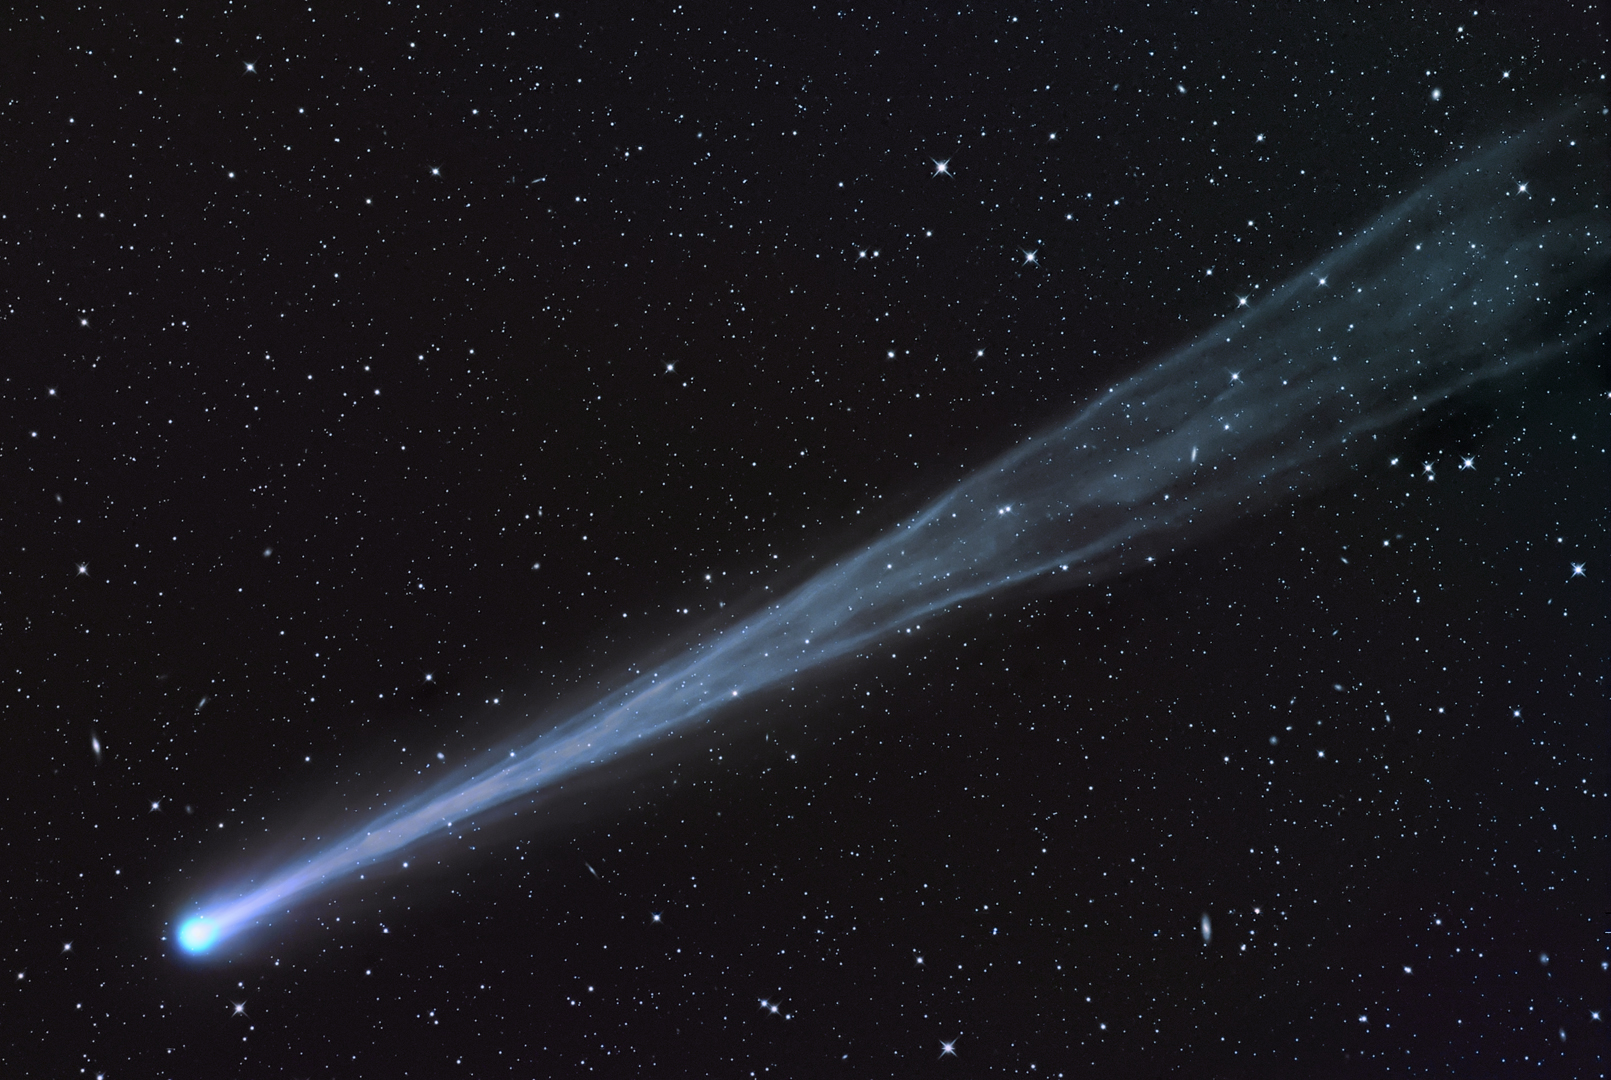 RIP Comet ISON: Scientists Declare Famous 'Sungrazer' Dead After Sun Encounter